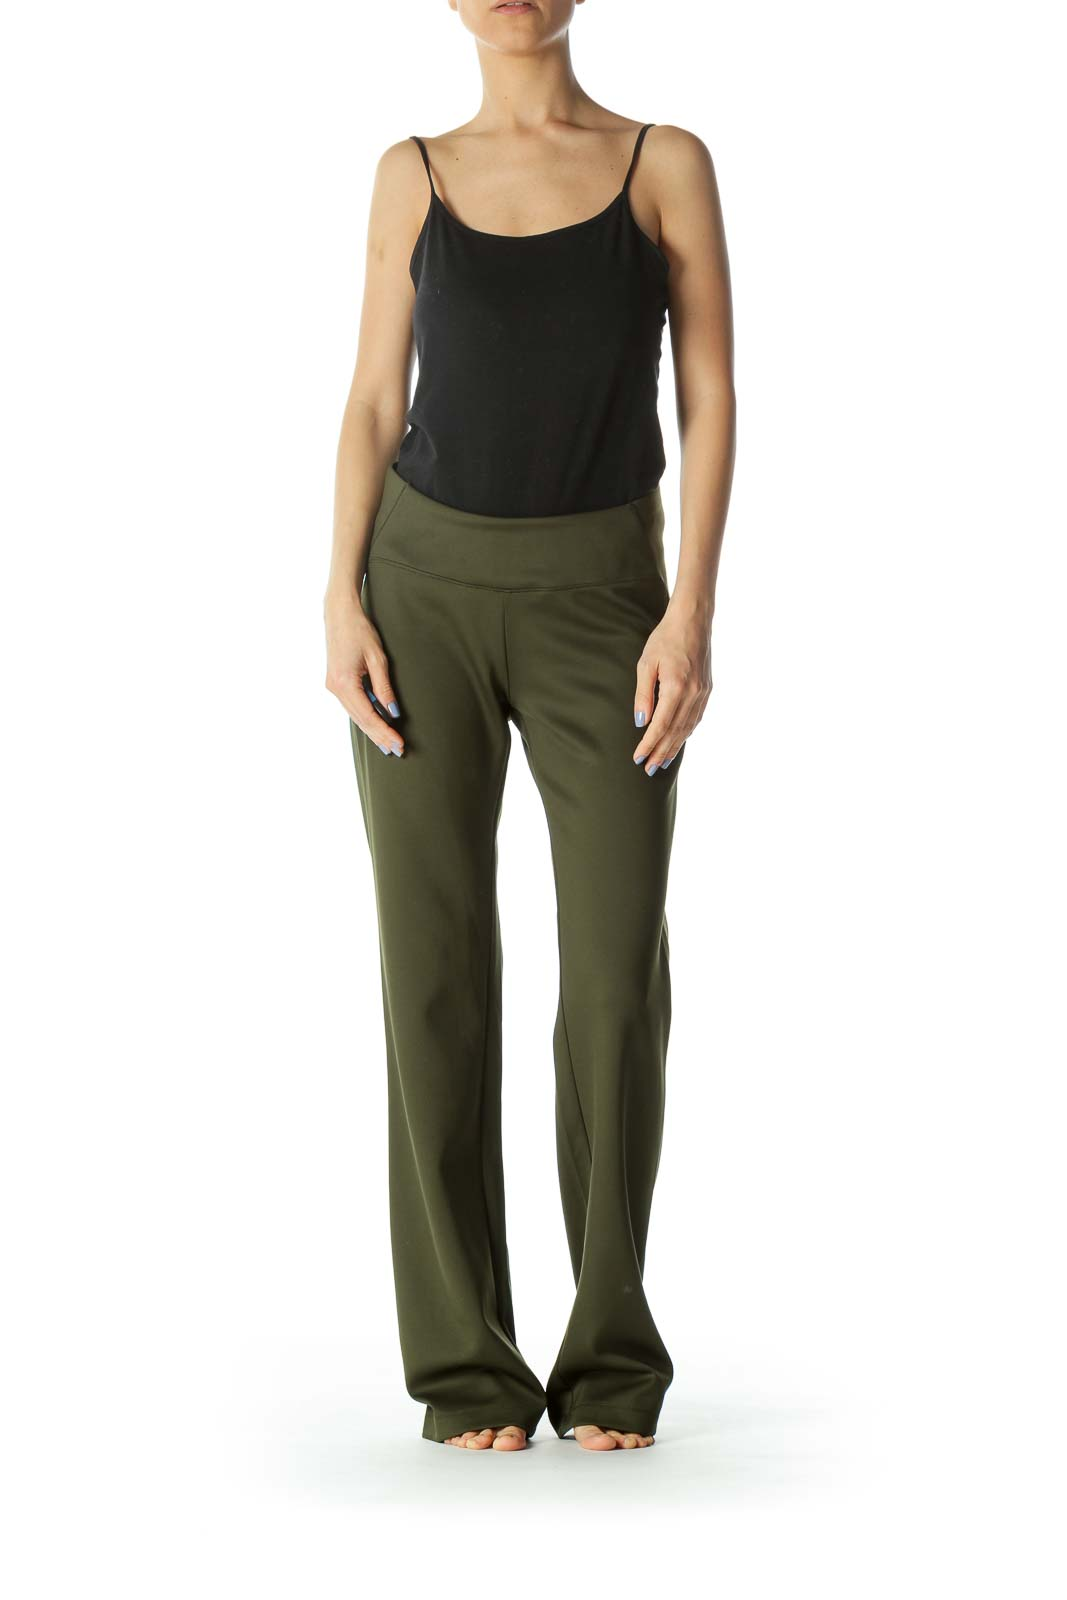 Olive Green Stretch Activewear Pants